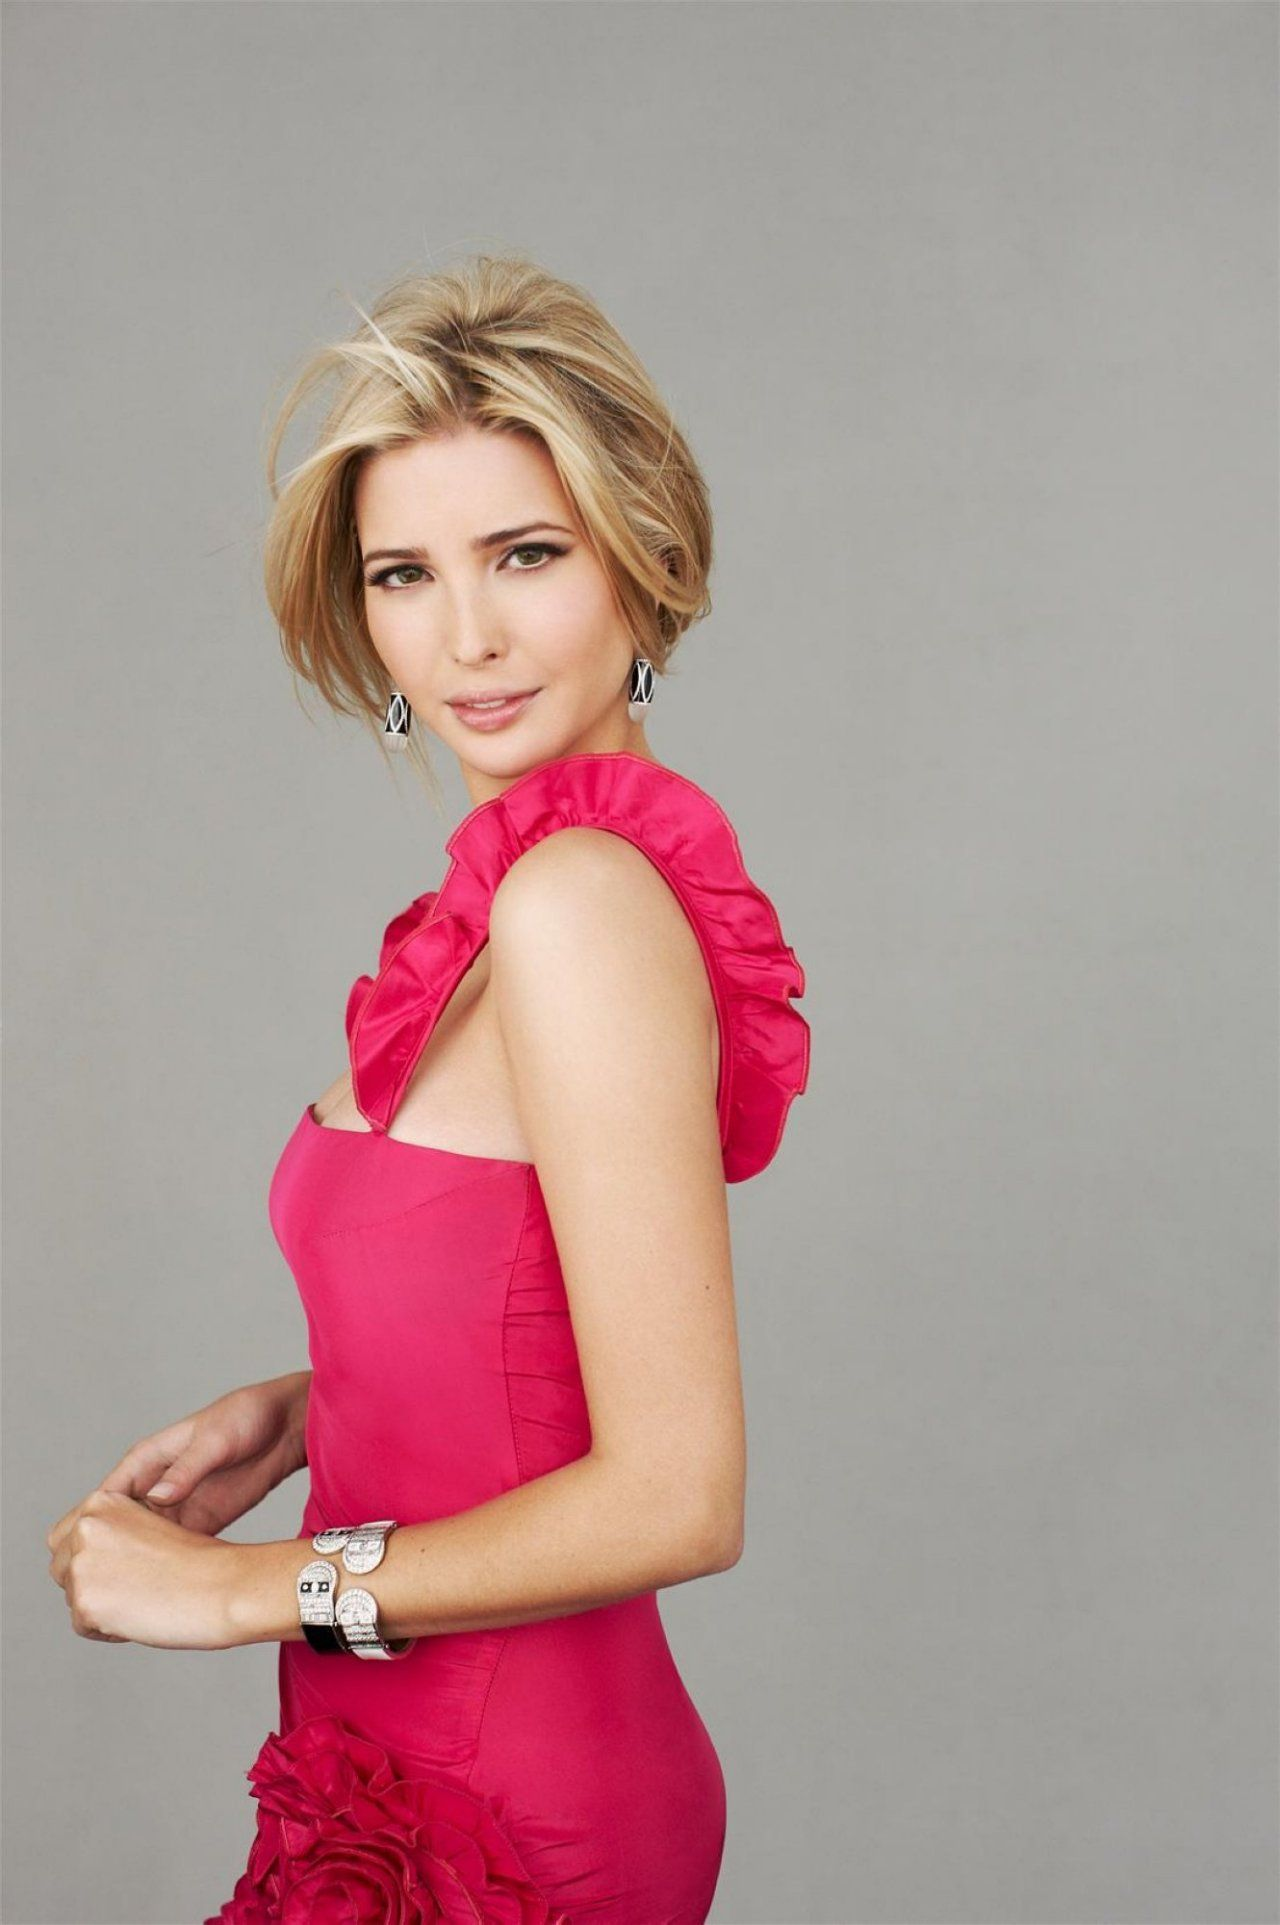 Photo Ivanka Trump Wallpapers With A Celebrity Ivanka Trump Nomer Mwwp Beautiful Wide And Free Ivanka Trump Photos Ivanka Trump Ivanka Trump Style